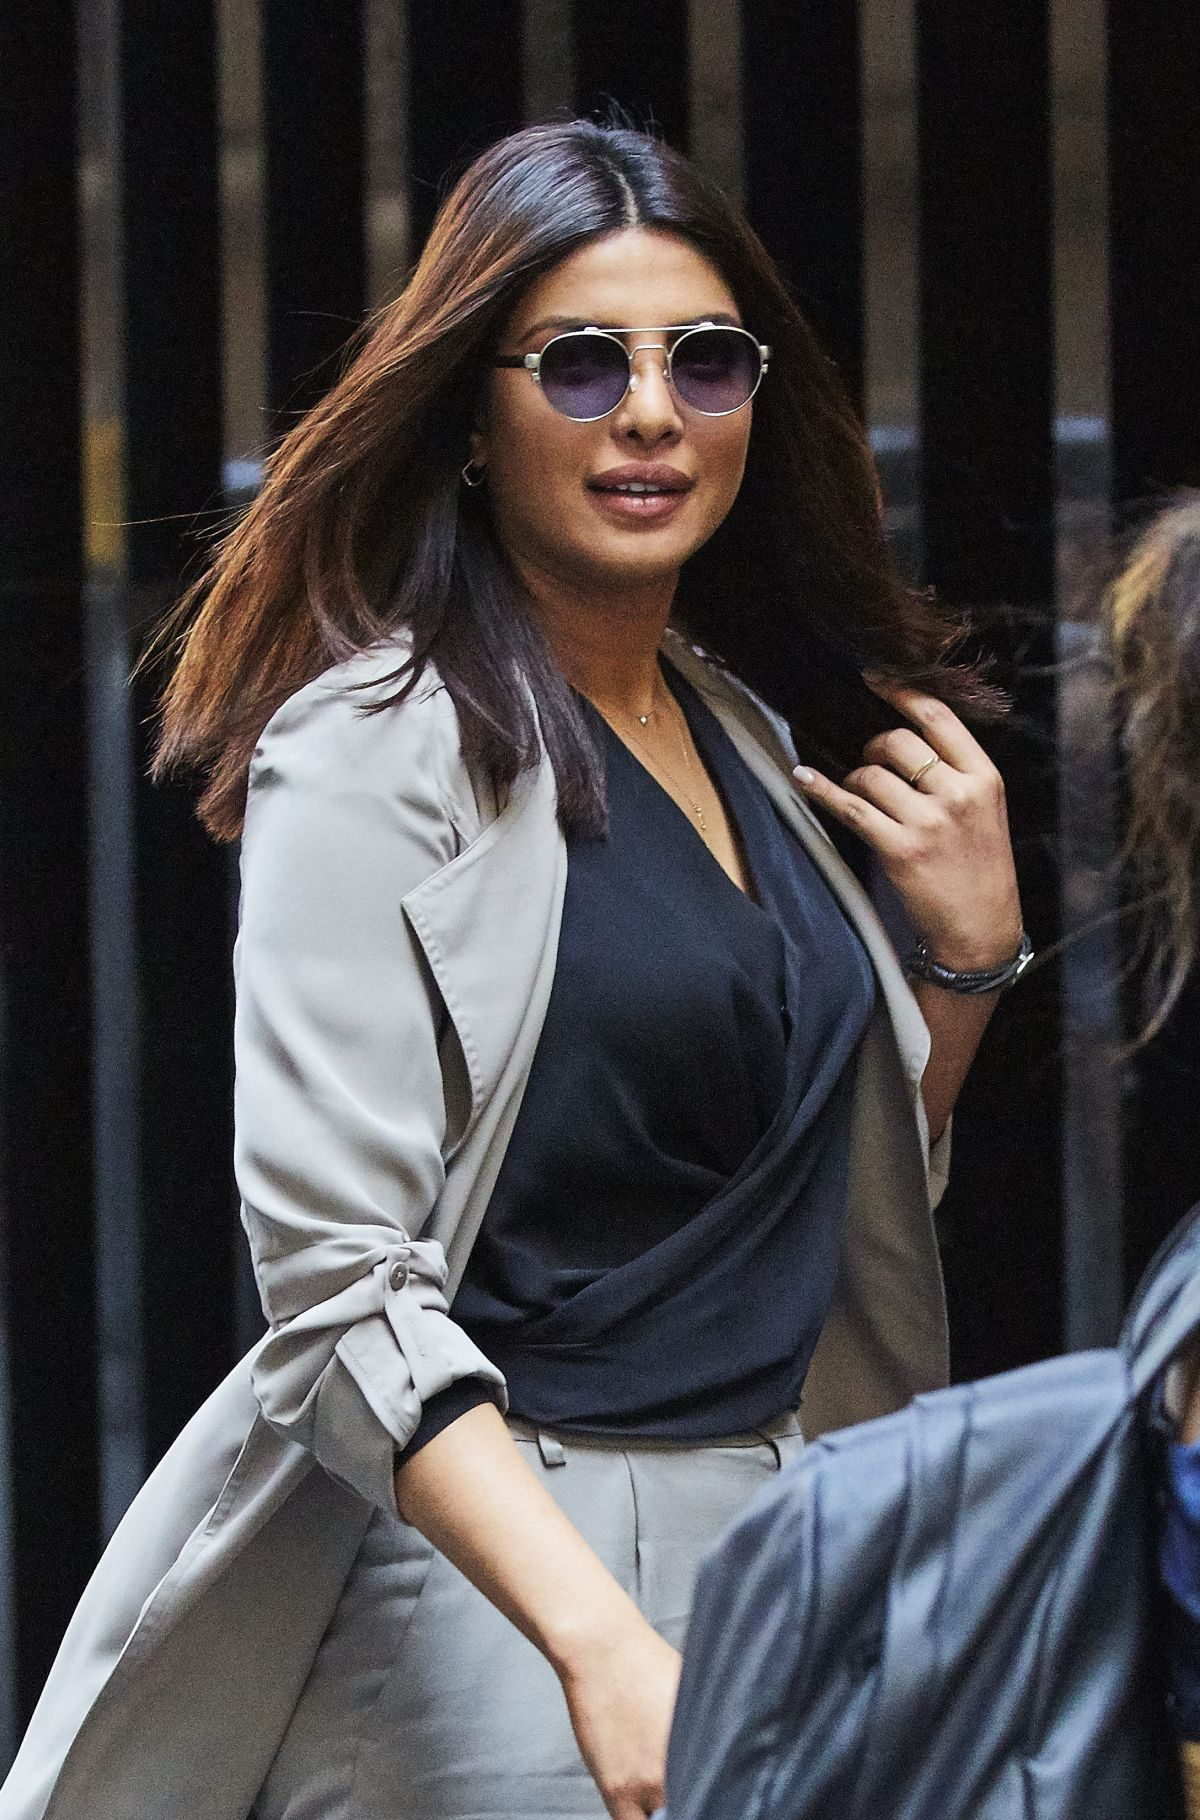 priyanka chopra - photo #37